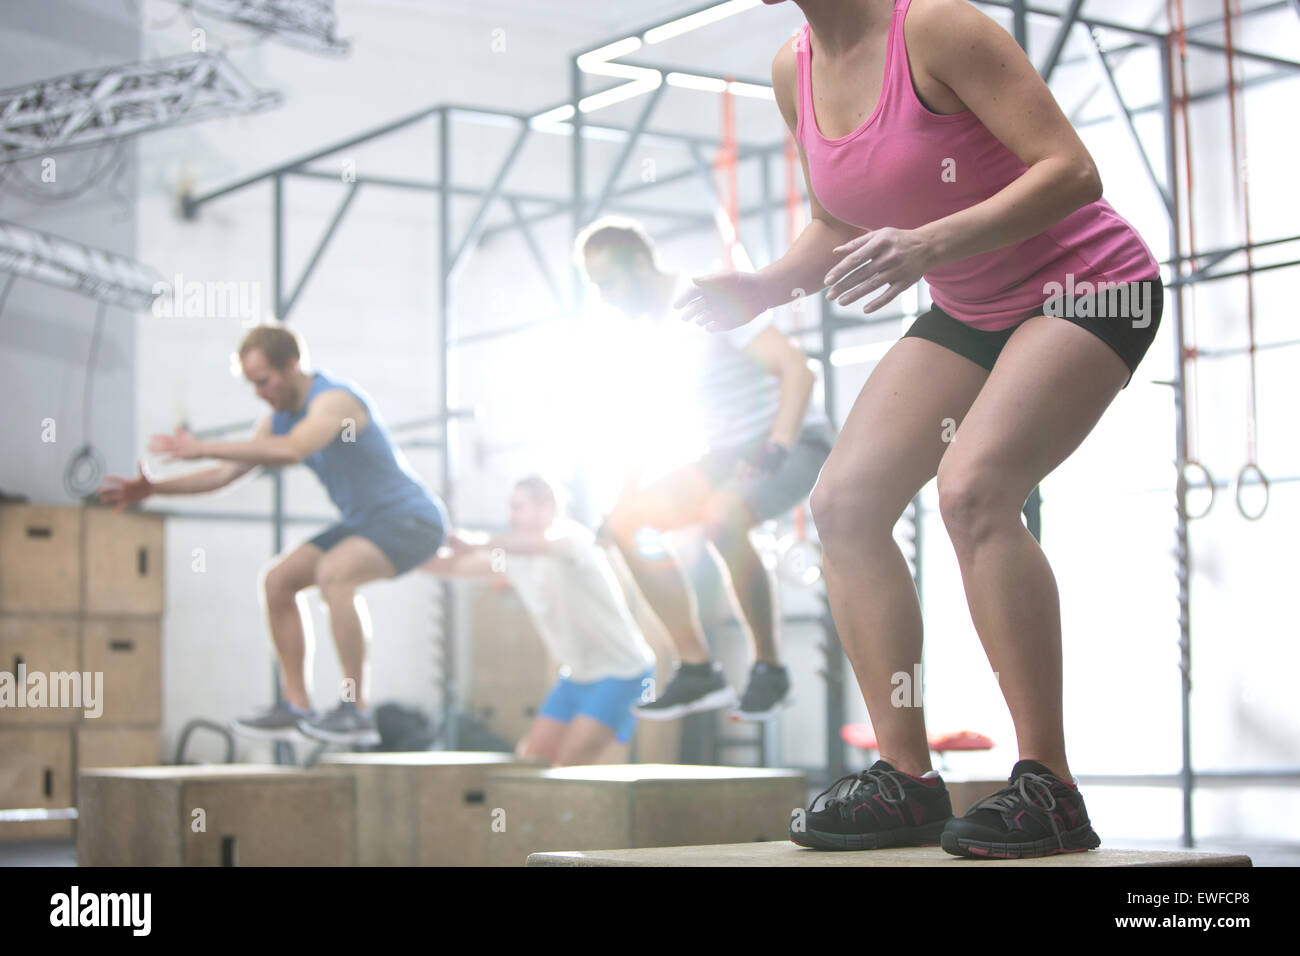 People doing box jump exercise in crossfit gym - Stock Image